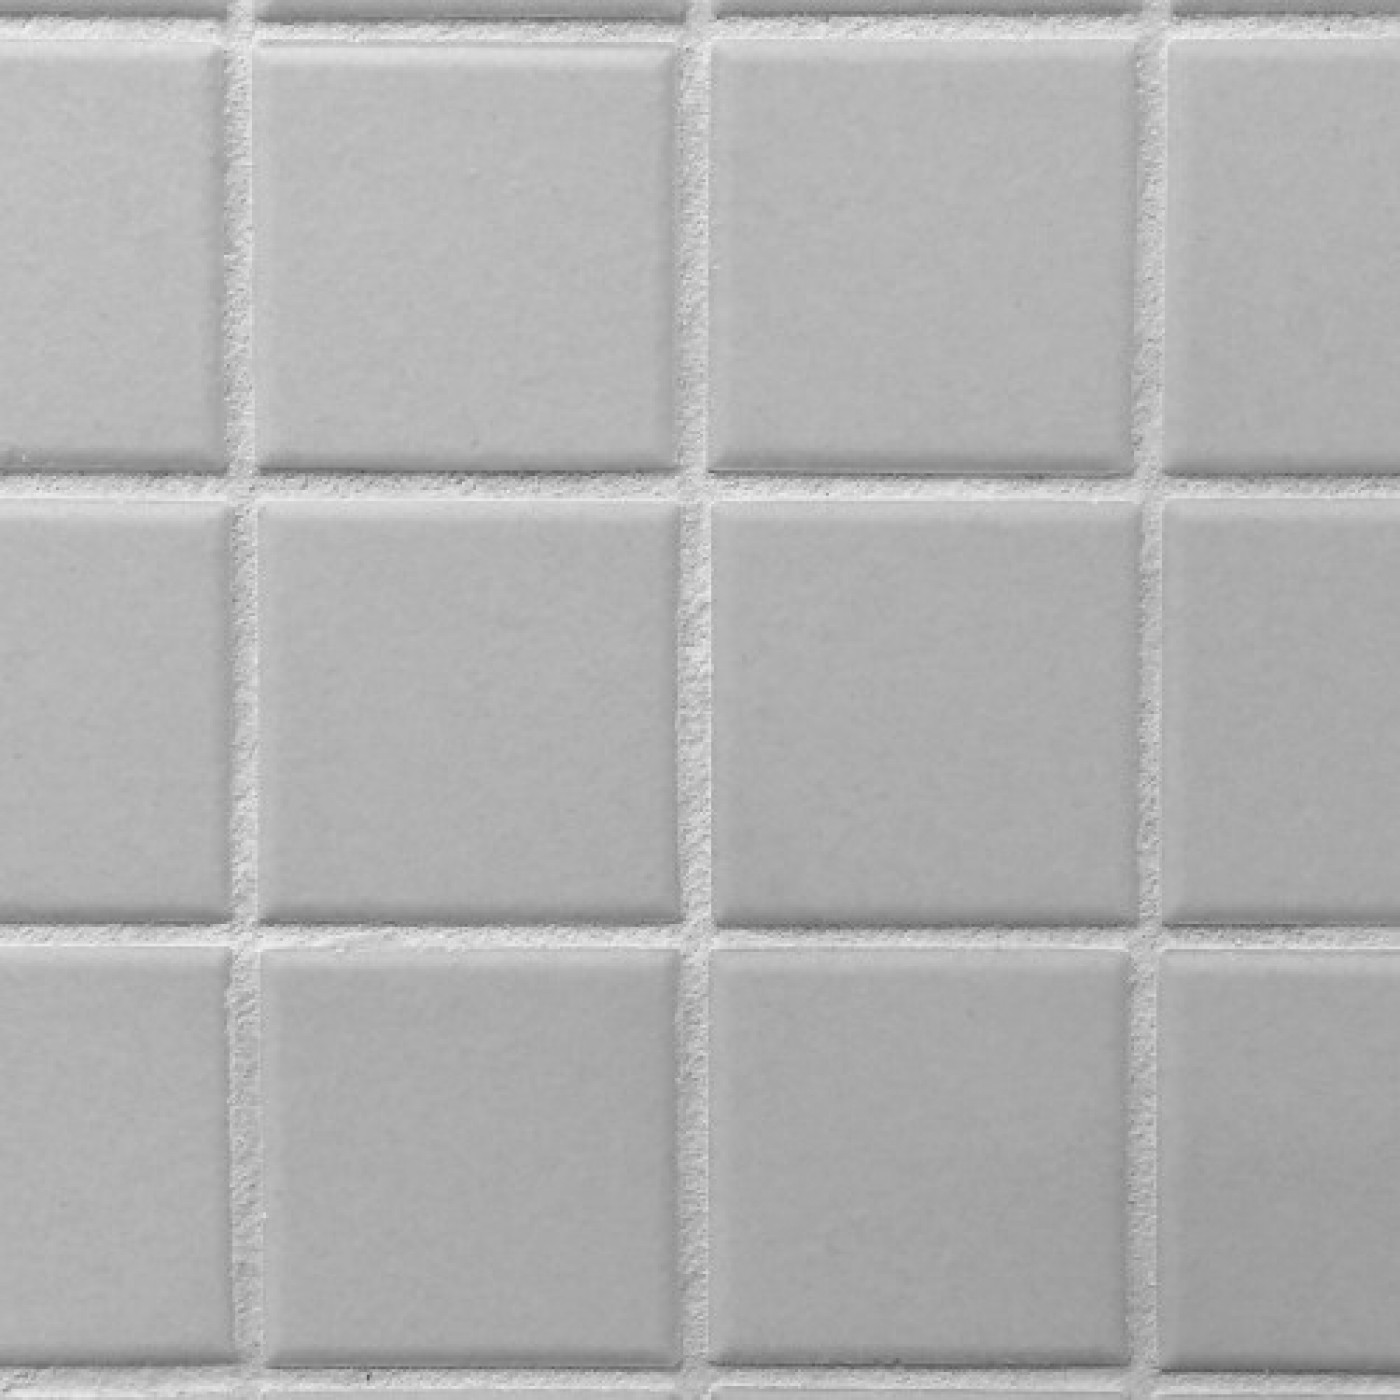 How to Get Your Grout Looking Like New